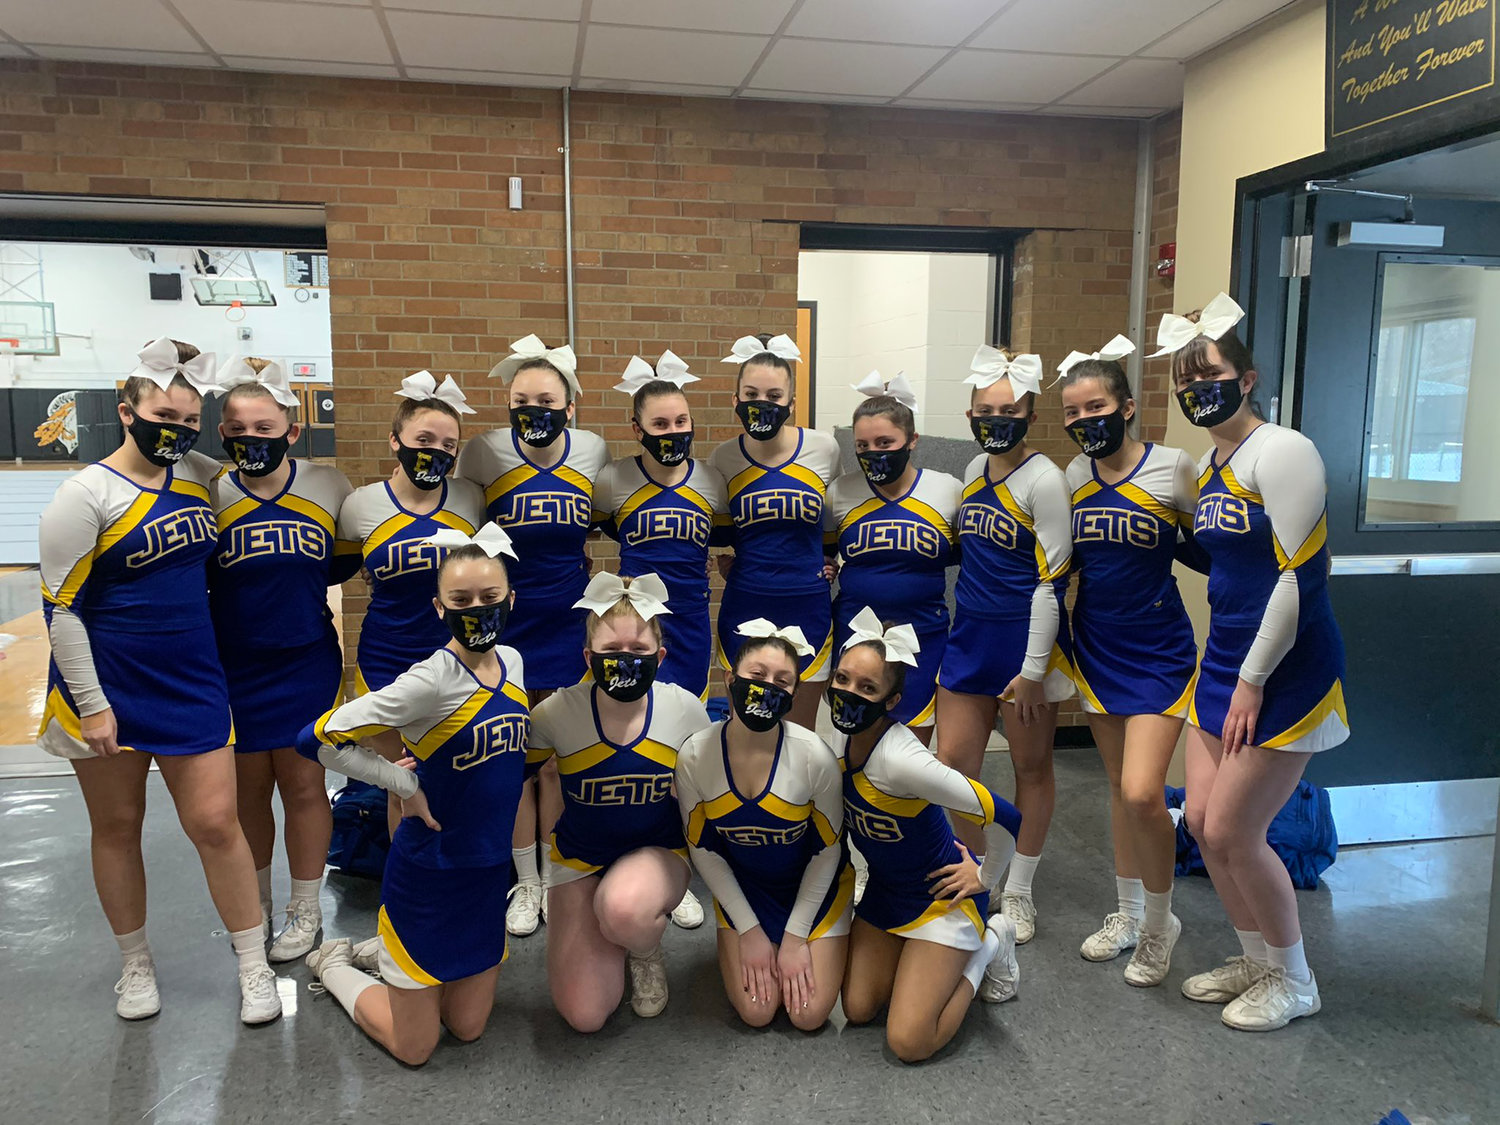 The East Meadow High School cheerleading team was back at practice as high-risk sports were given the green light to resume last month.